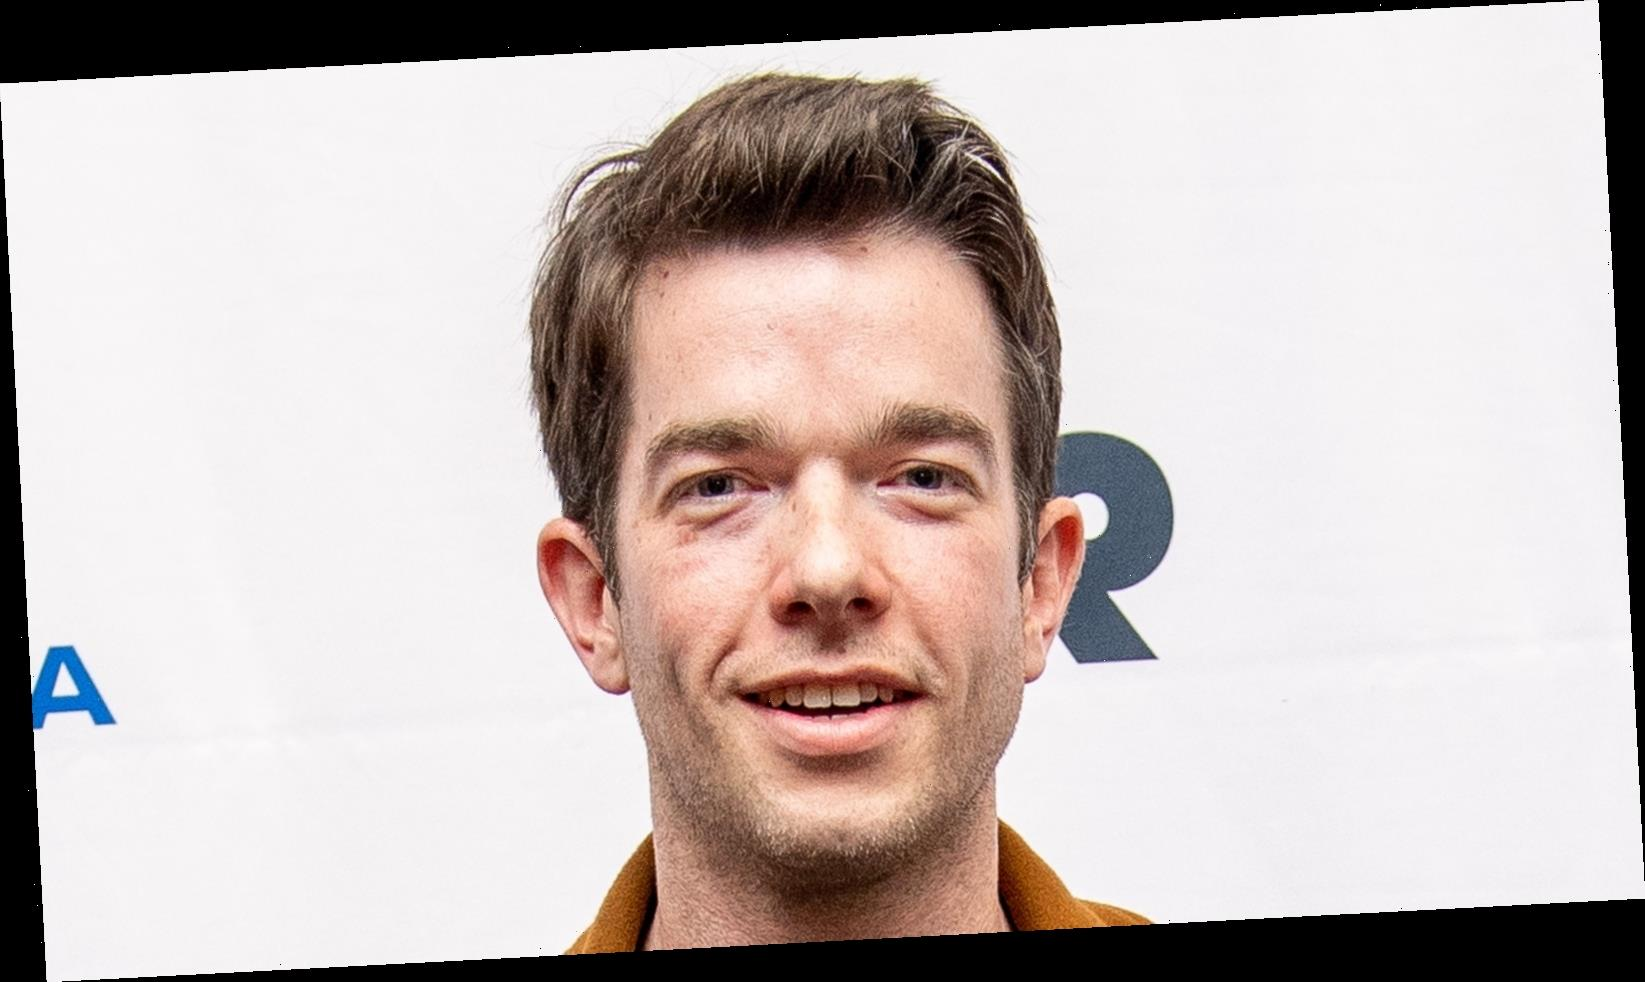 The real reason John Mulaney was investigated by the Secret Service